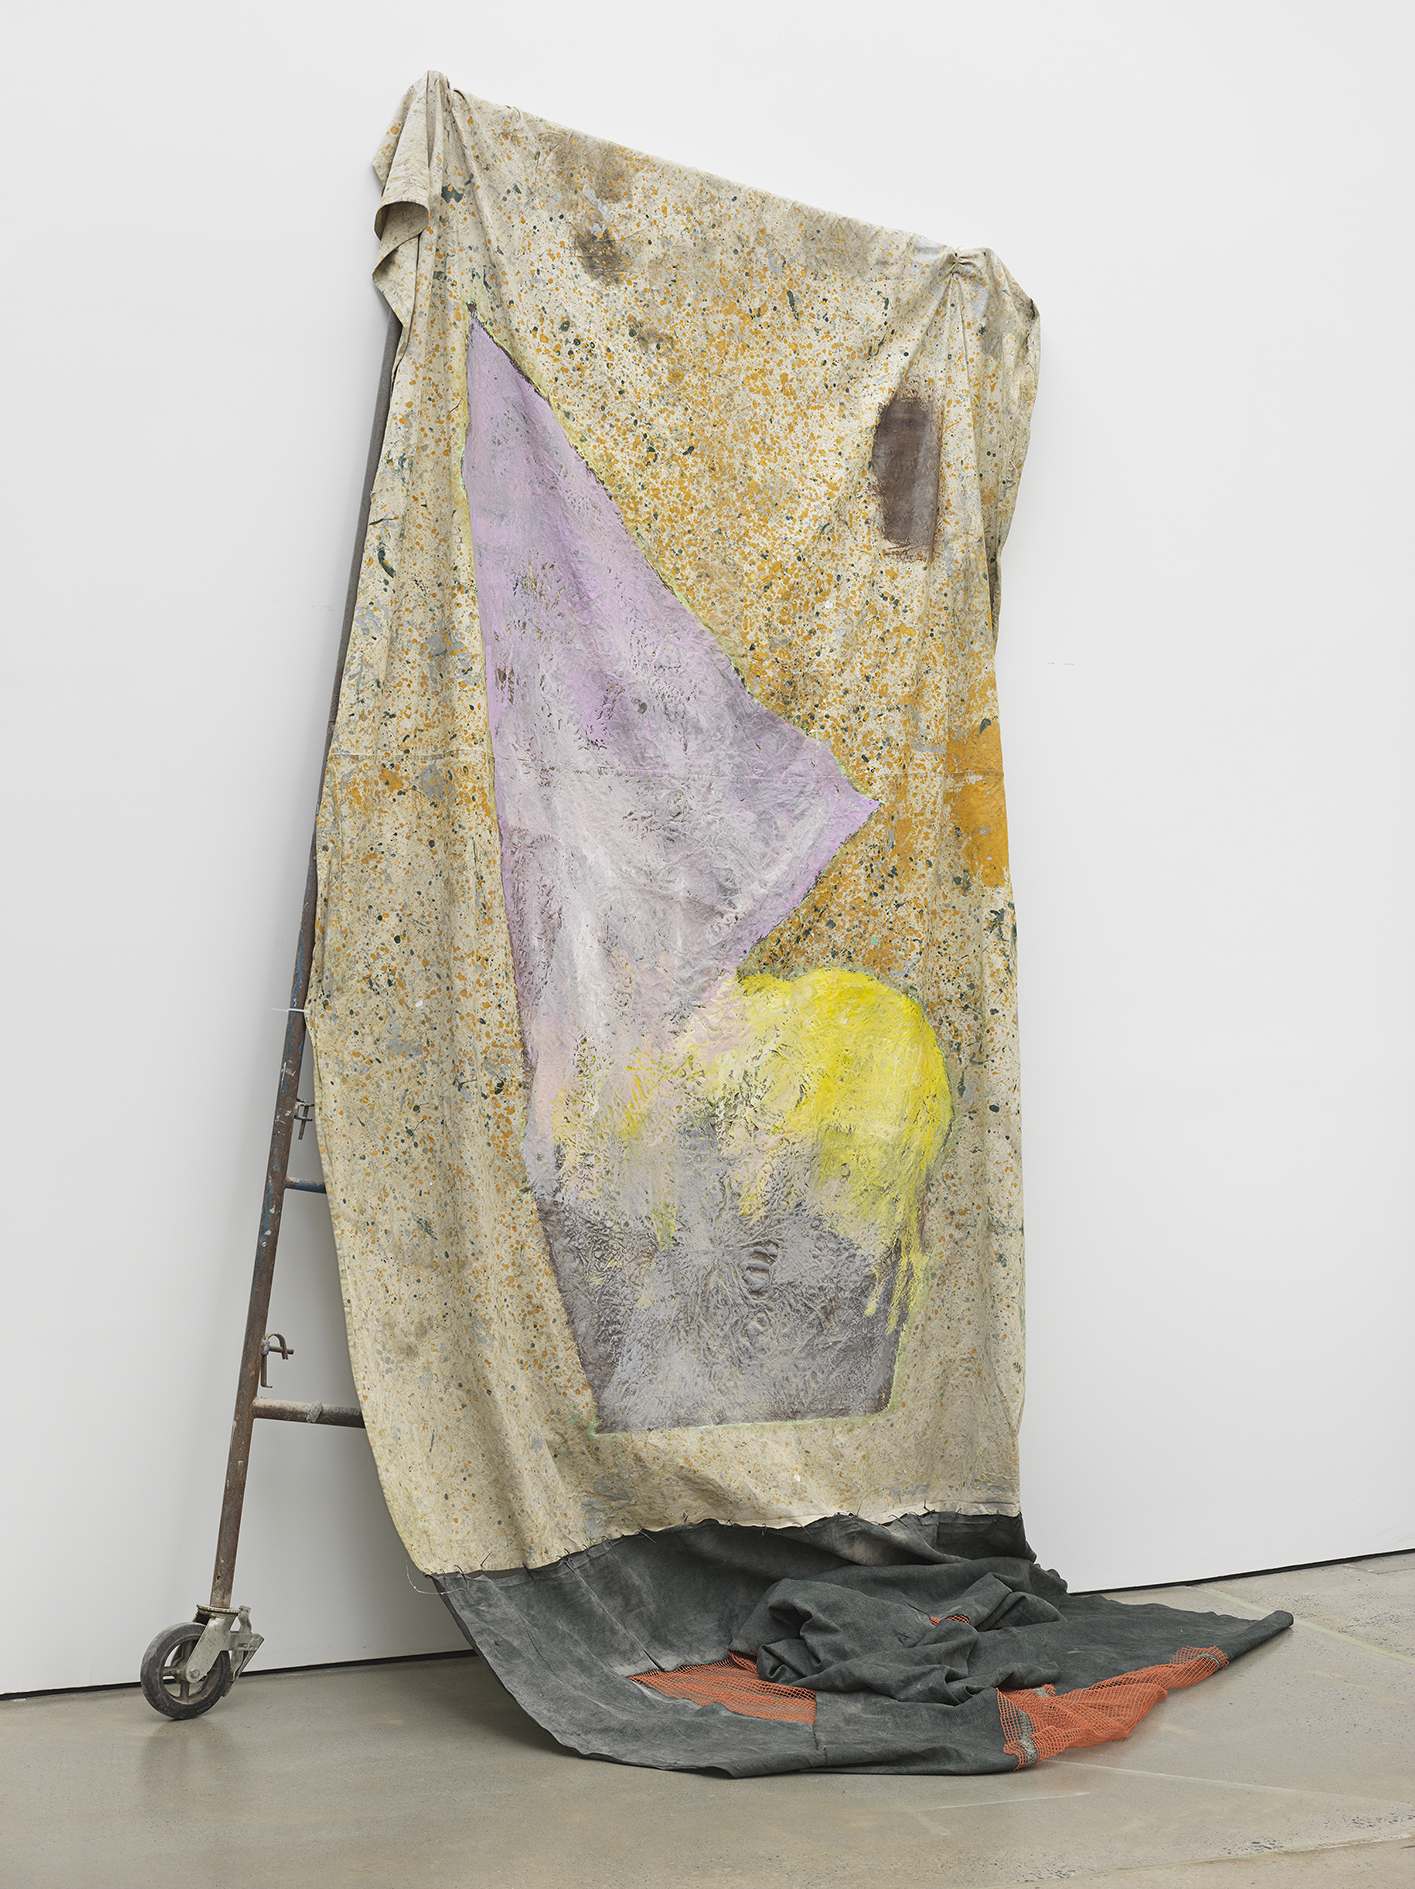 HAMMO96197  David Hammons Untitled 2017 Mixed media © David Hammons Courtesy the artist and Hauser & Wirth Photo: Genevieve Hanson